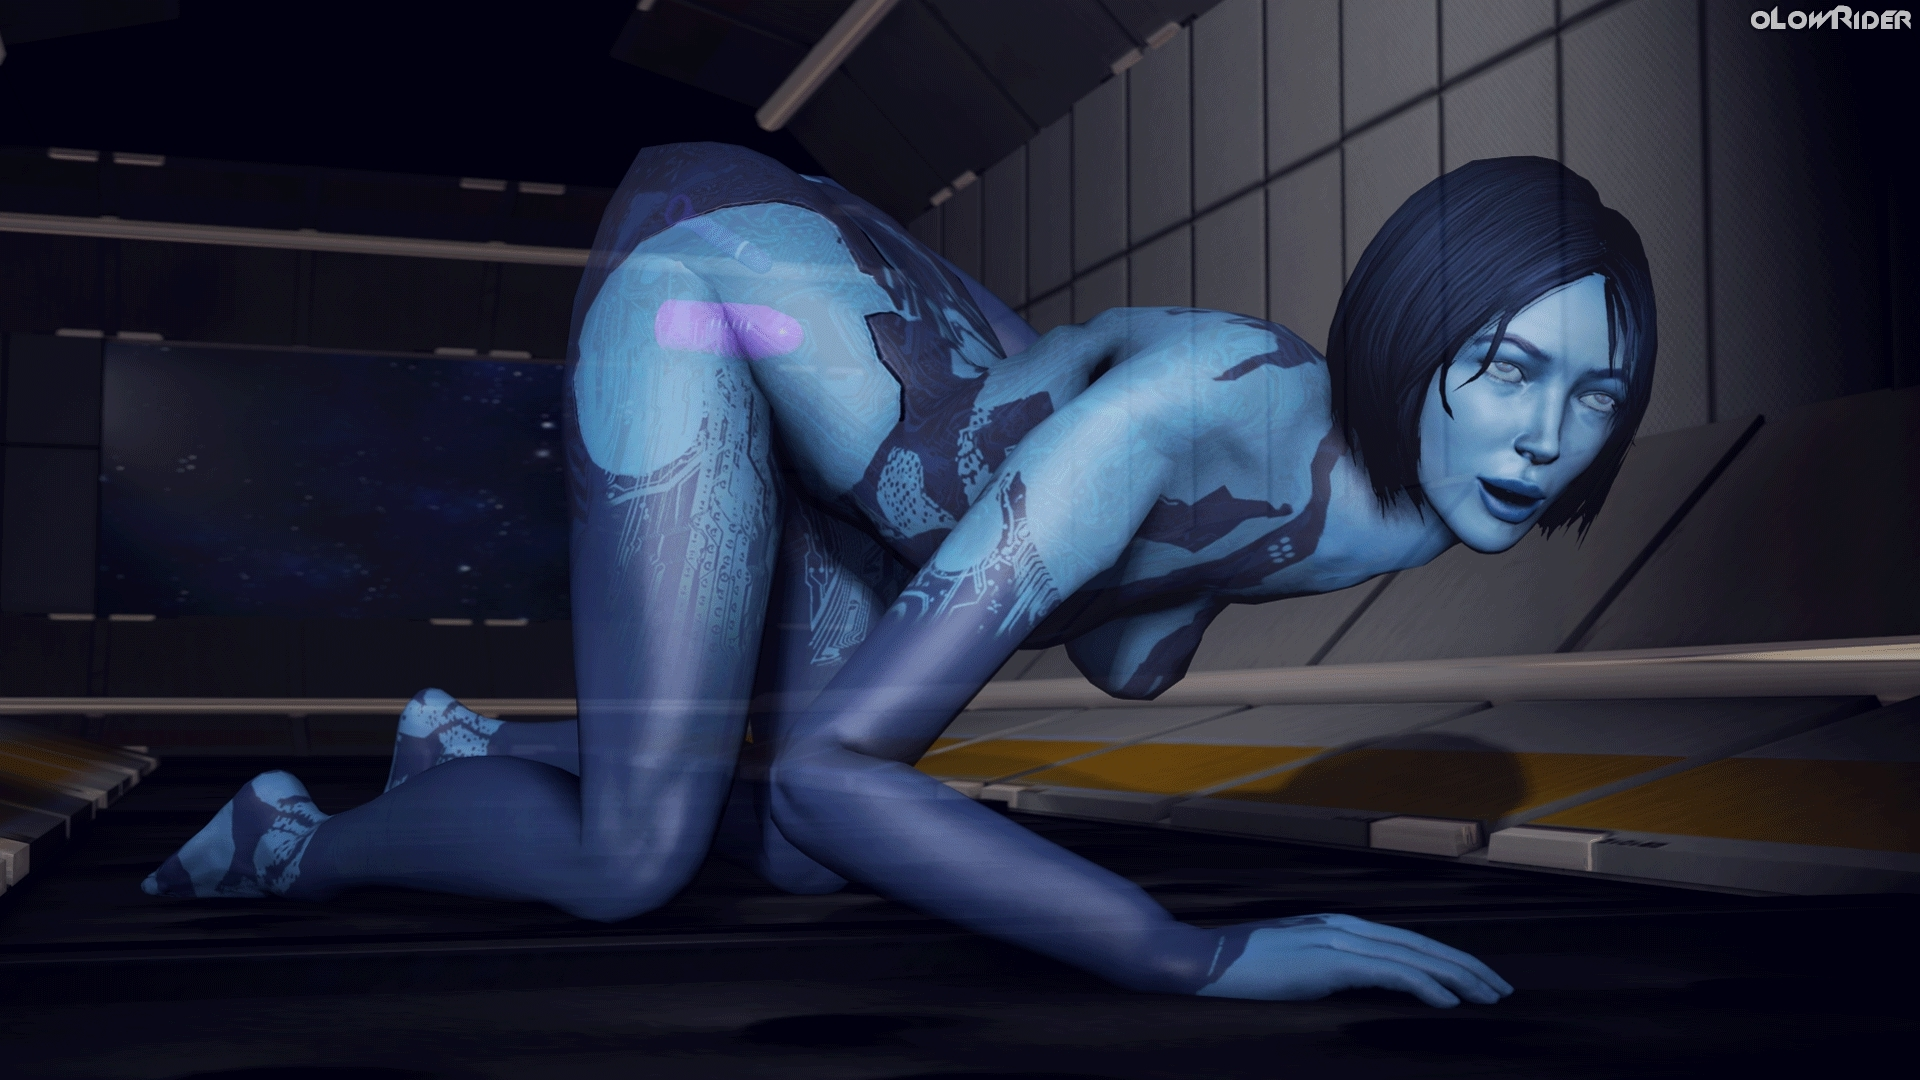 Halo cortana moving hentai images sexy pic